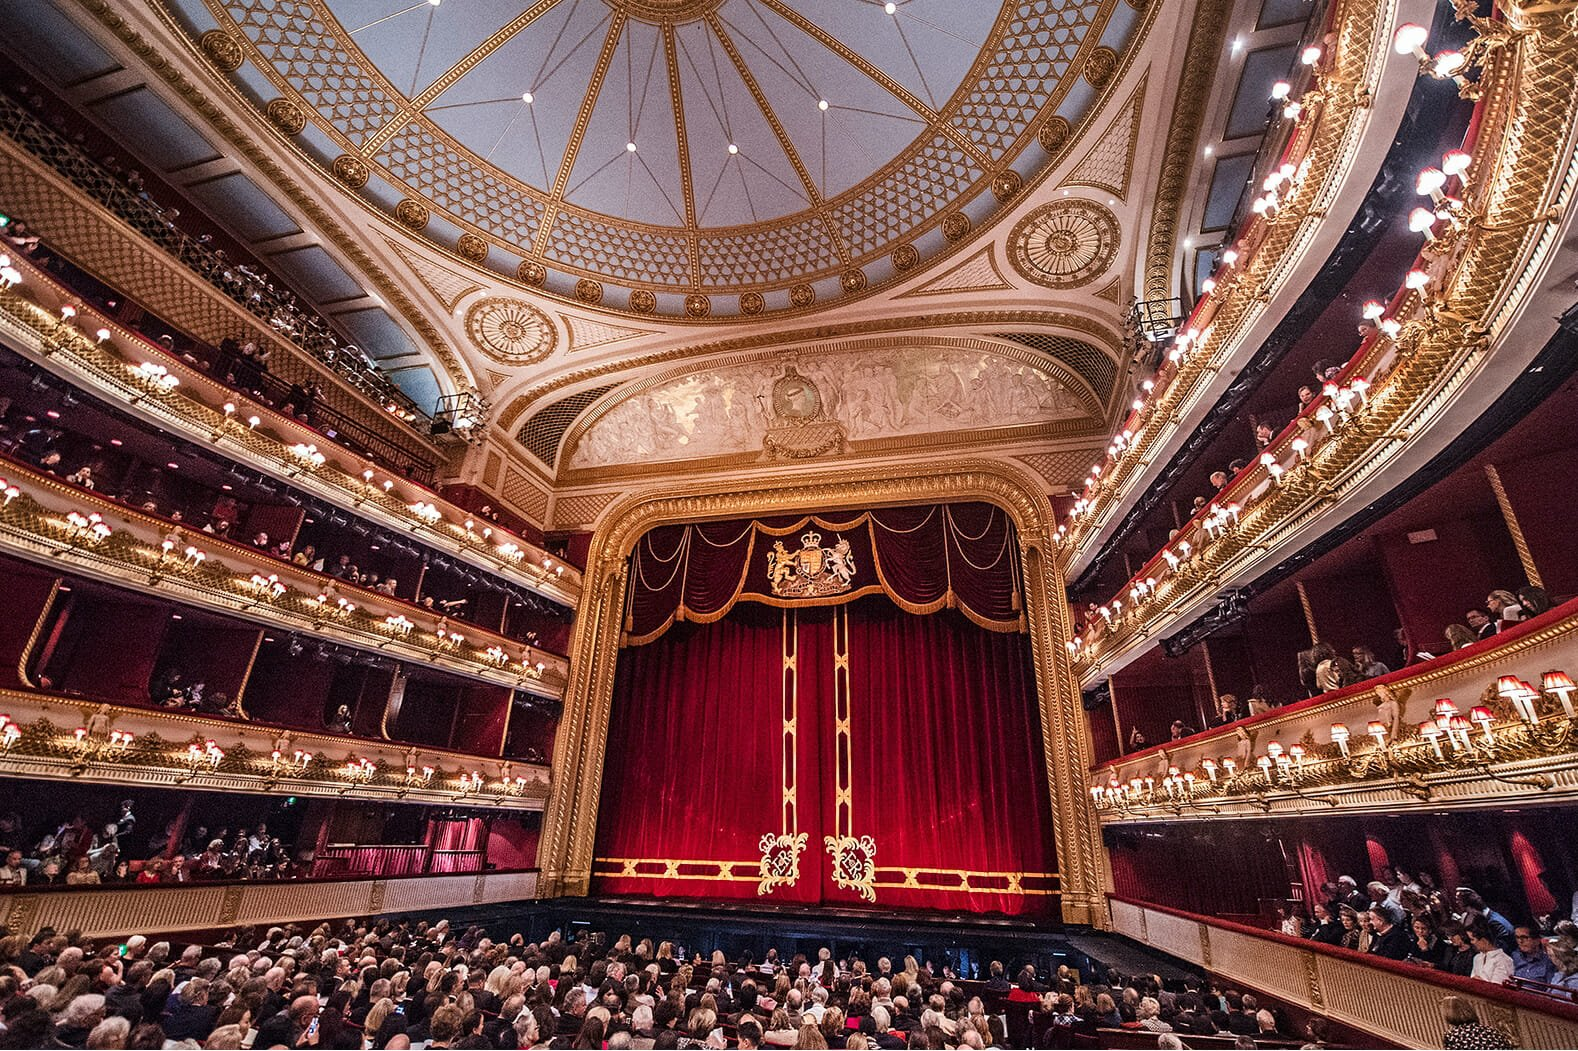 Royal Opera House ballet London